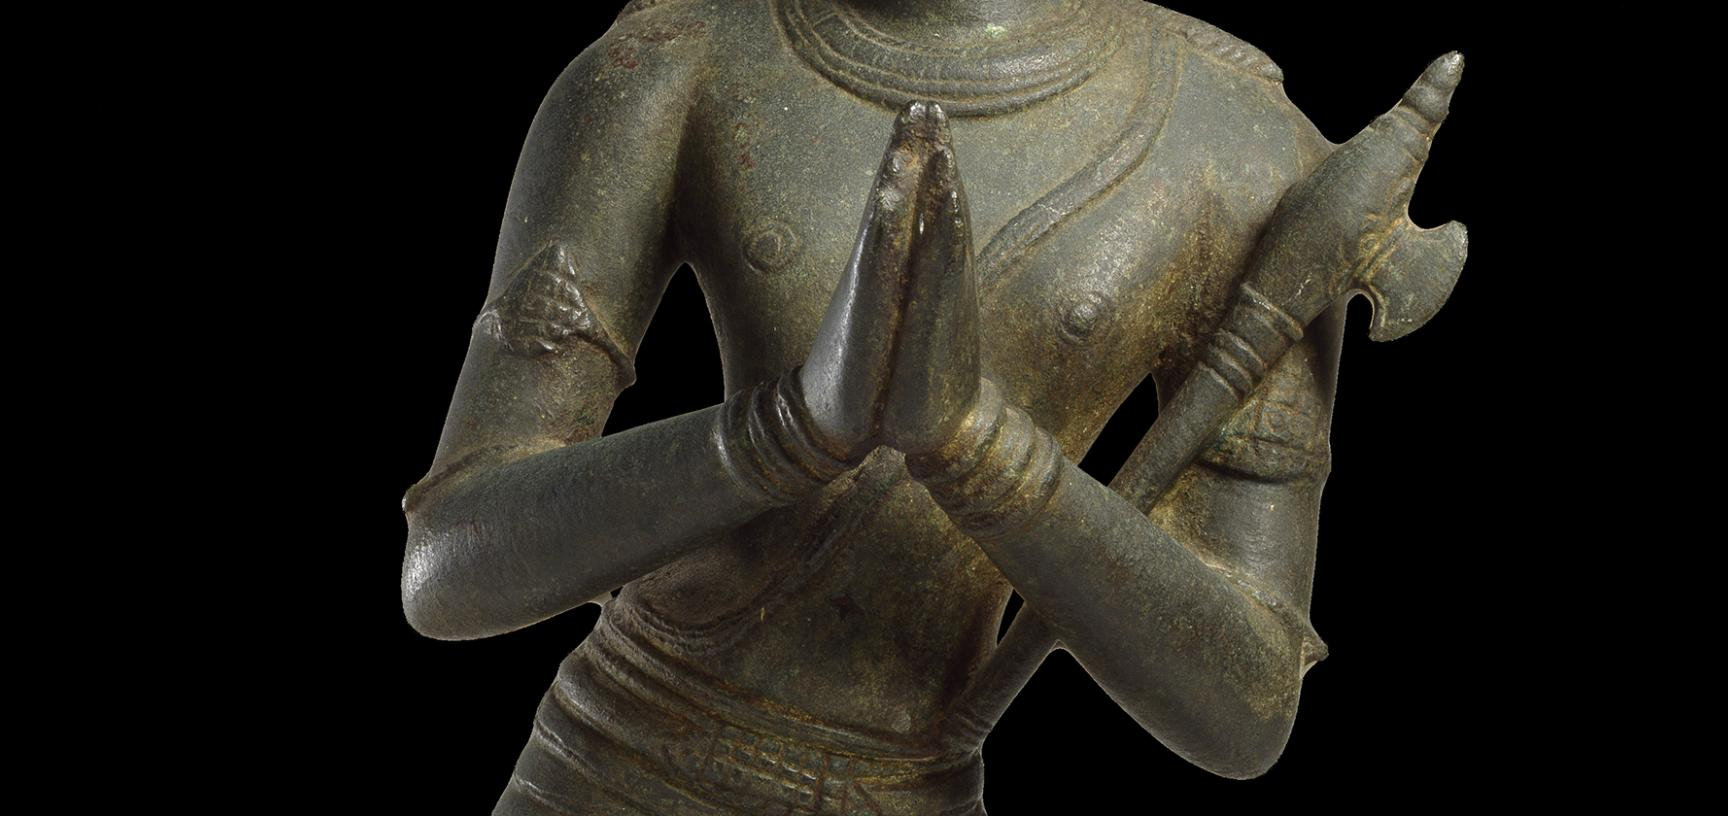 Close-up on hands figure of Hindu Saint Chandikeshvara, showing gesture of respectful salutation.